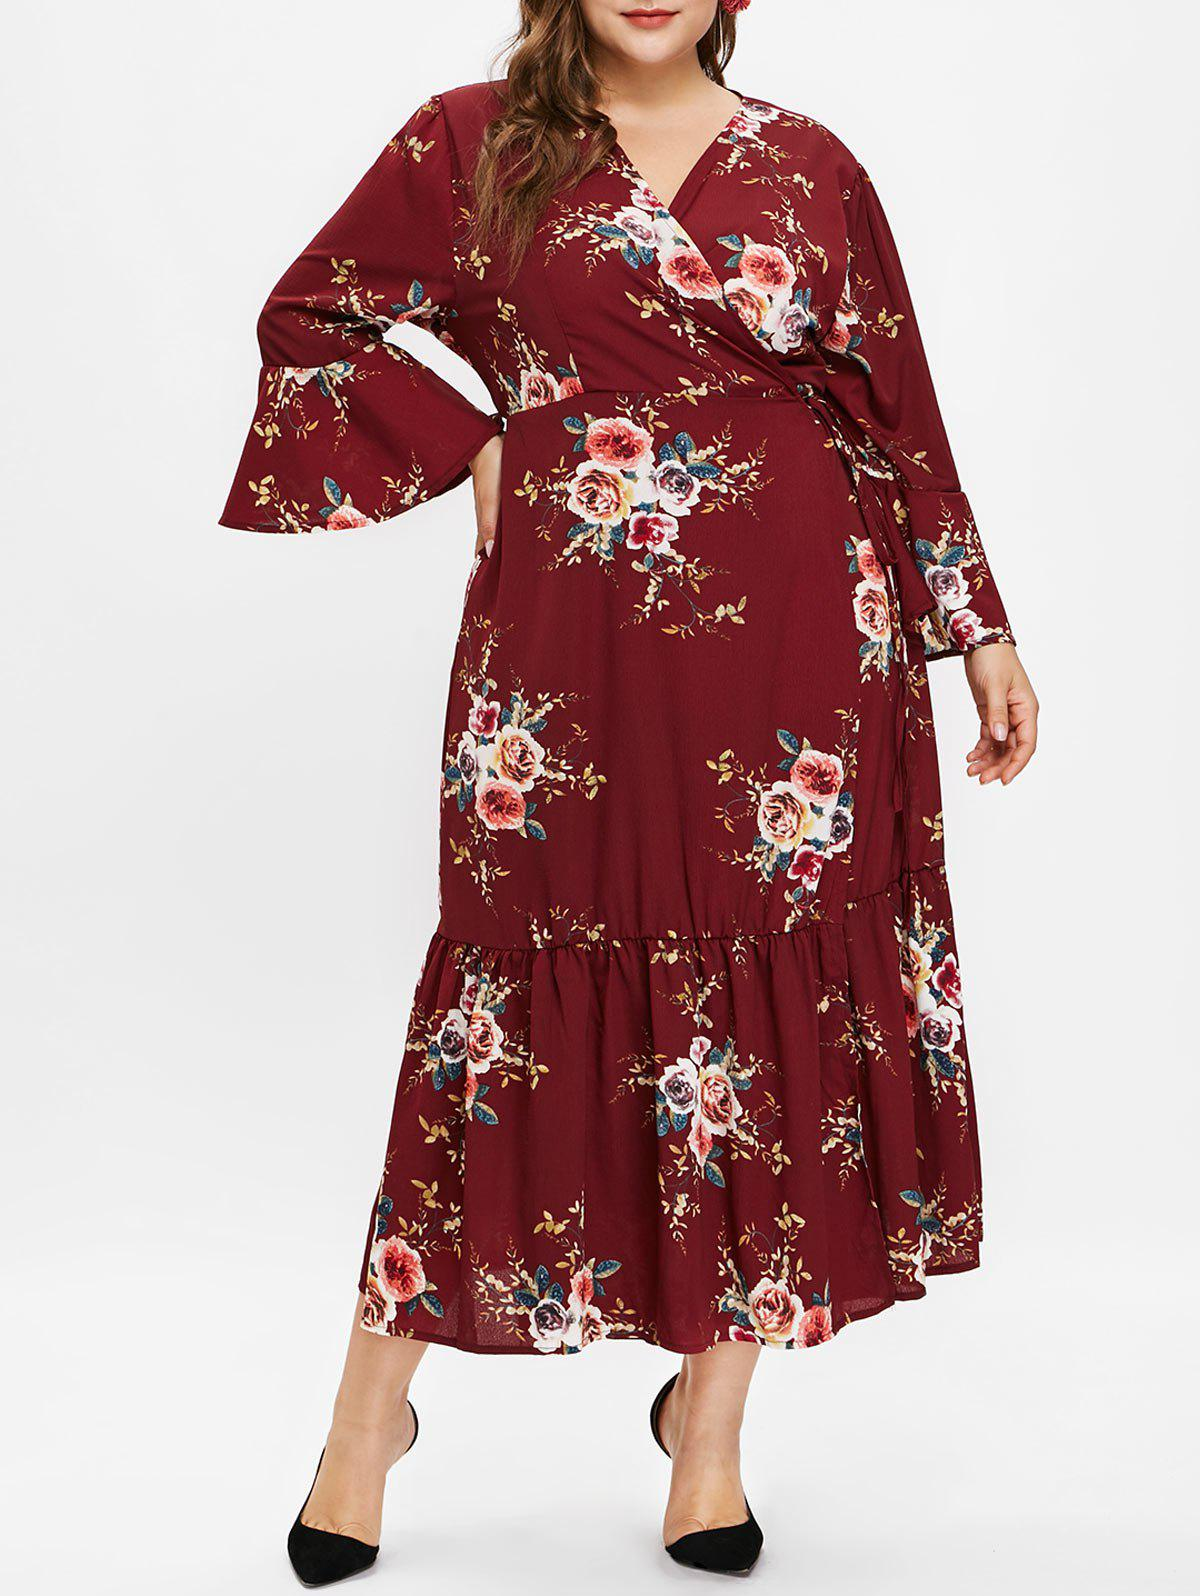 Chic Plus Size Long Sleeves Floral Wrap Dress